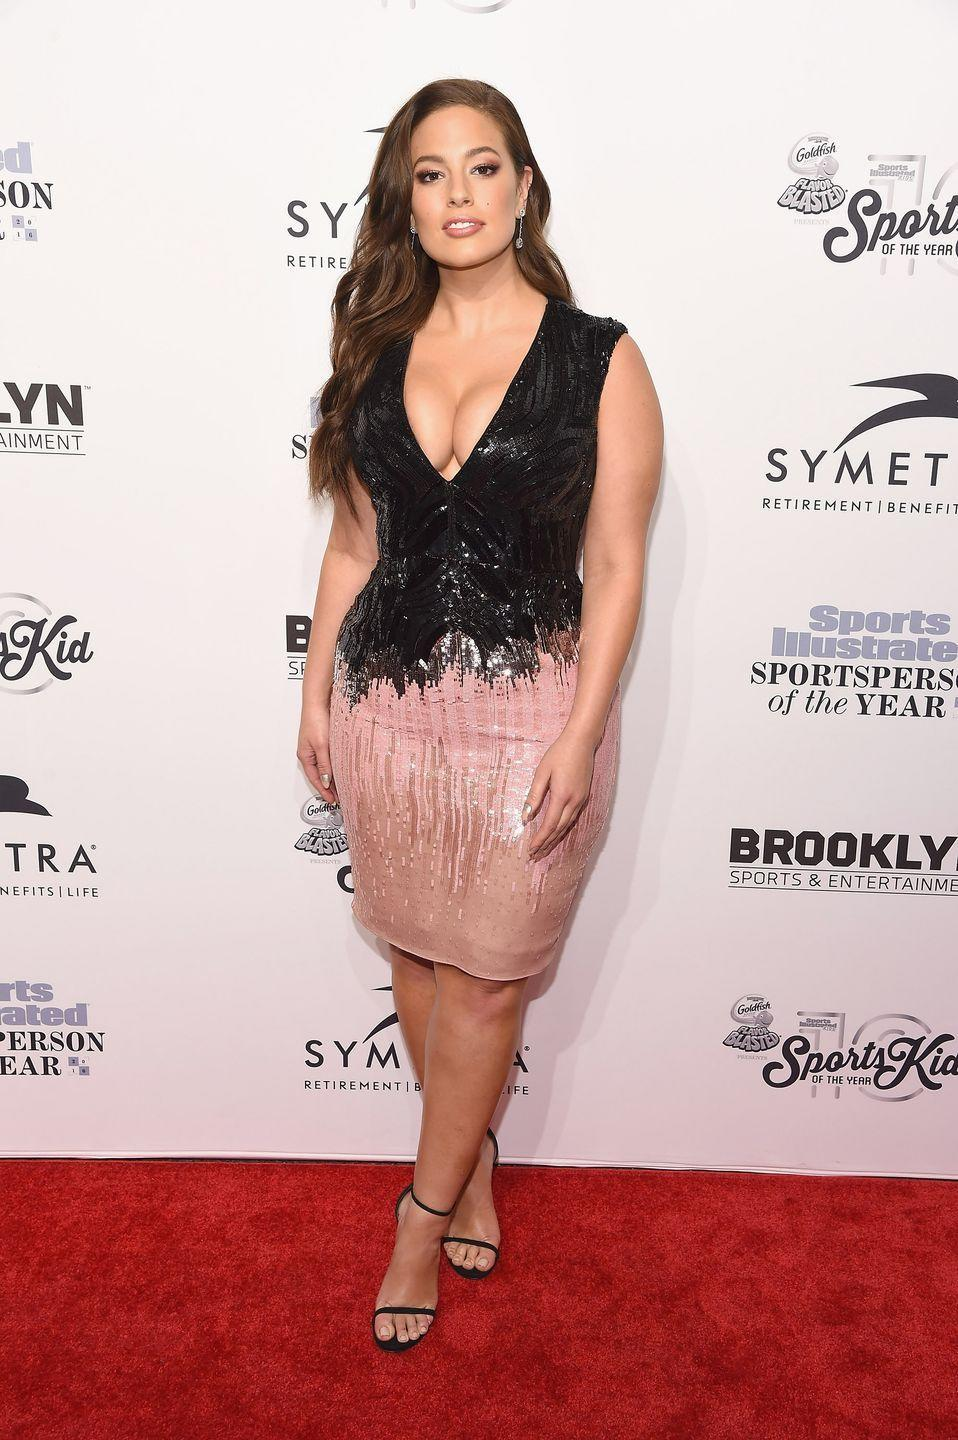 <p>Sports Illustrated Sportsperson of the year, 2016: This dress has the sequins, the millennial pink AND the cleavage.</p>